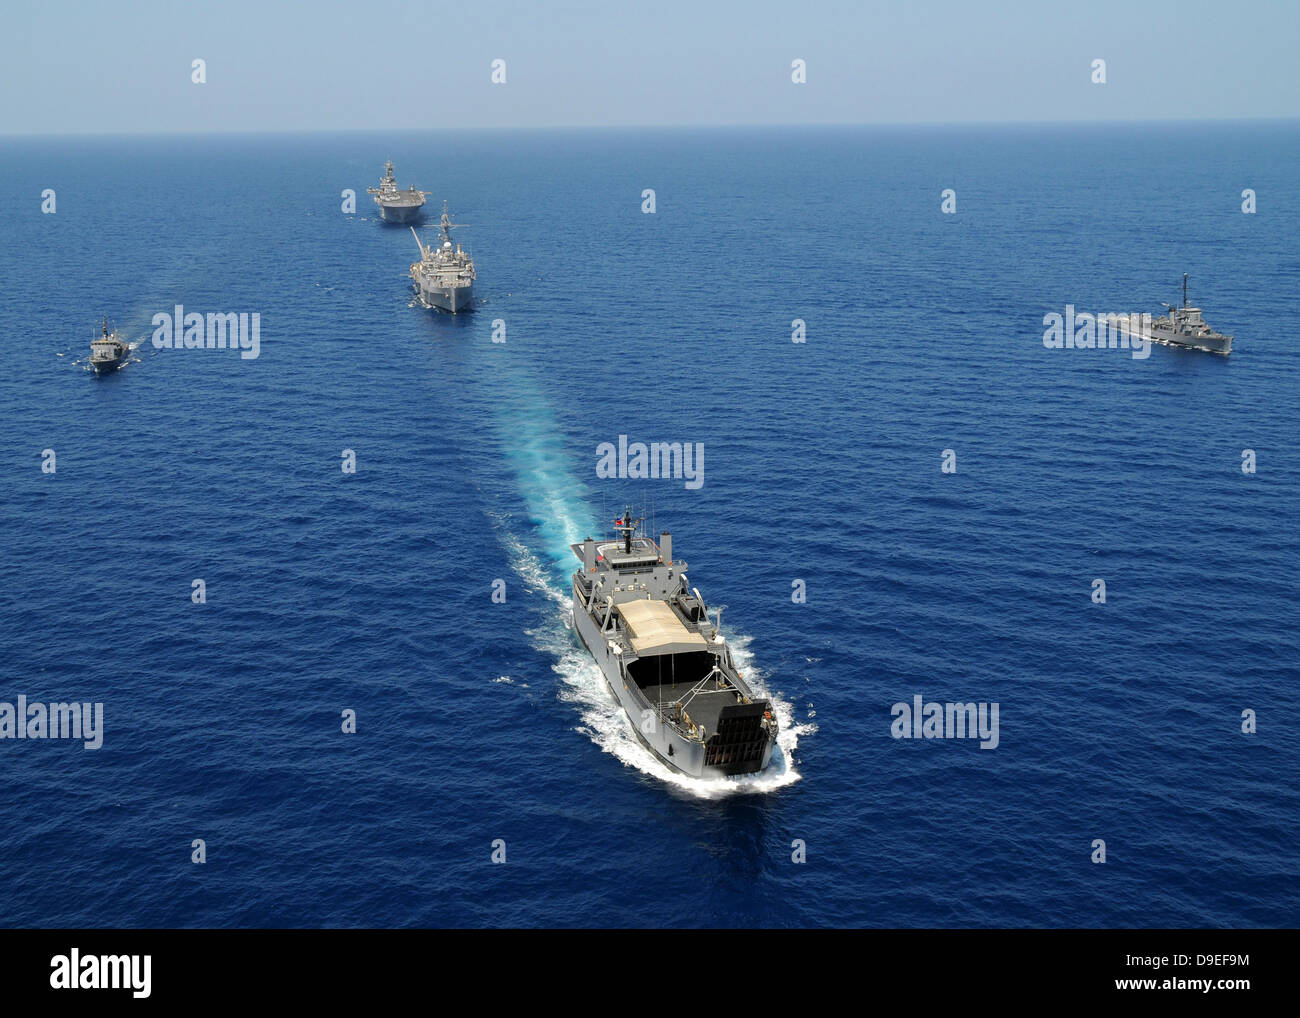 The Republic of the Philippines Navy ships cruise in formation while taking part in exercise Balikatan 2010. - Stock Image